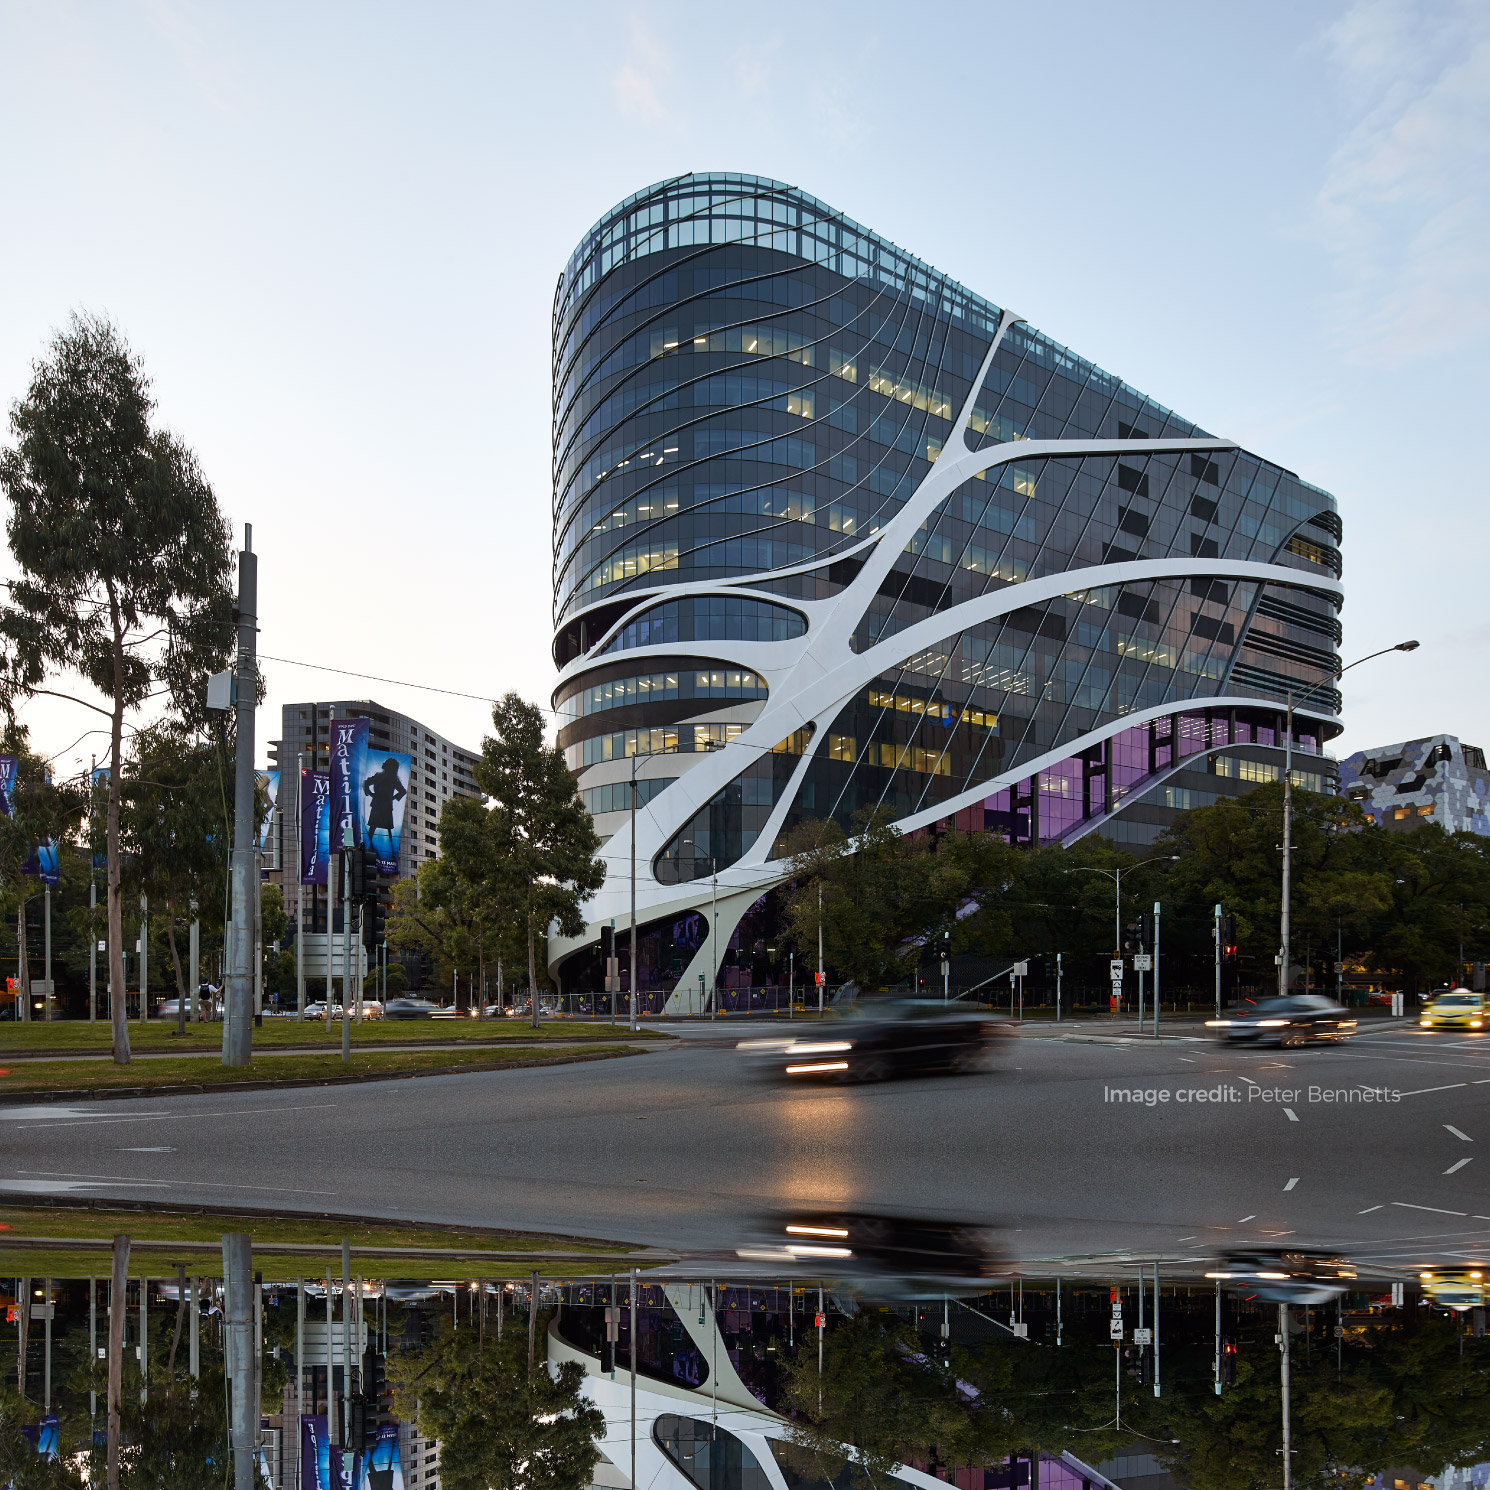 External photograph of the VCCC building in the Melbourne Biomedical Precinct